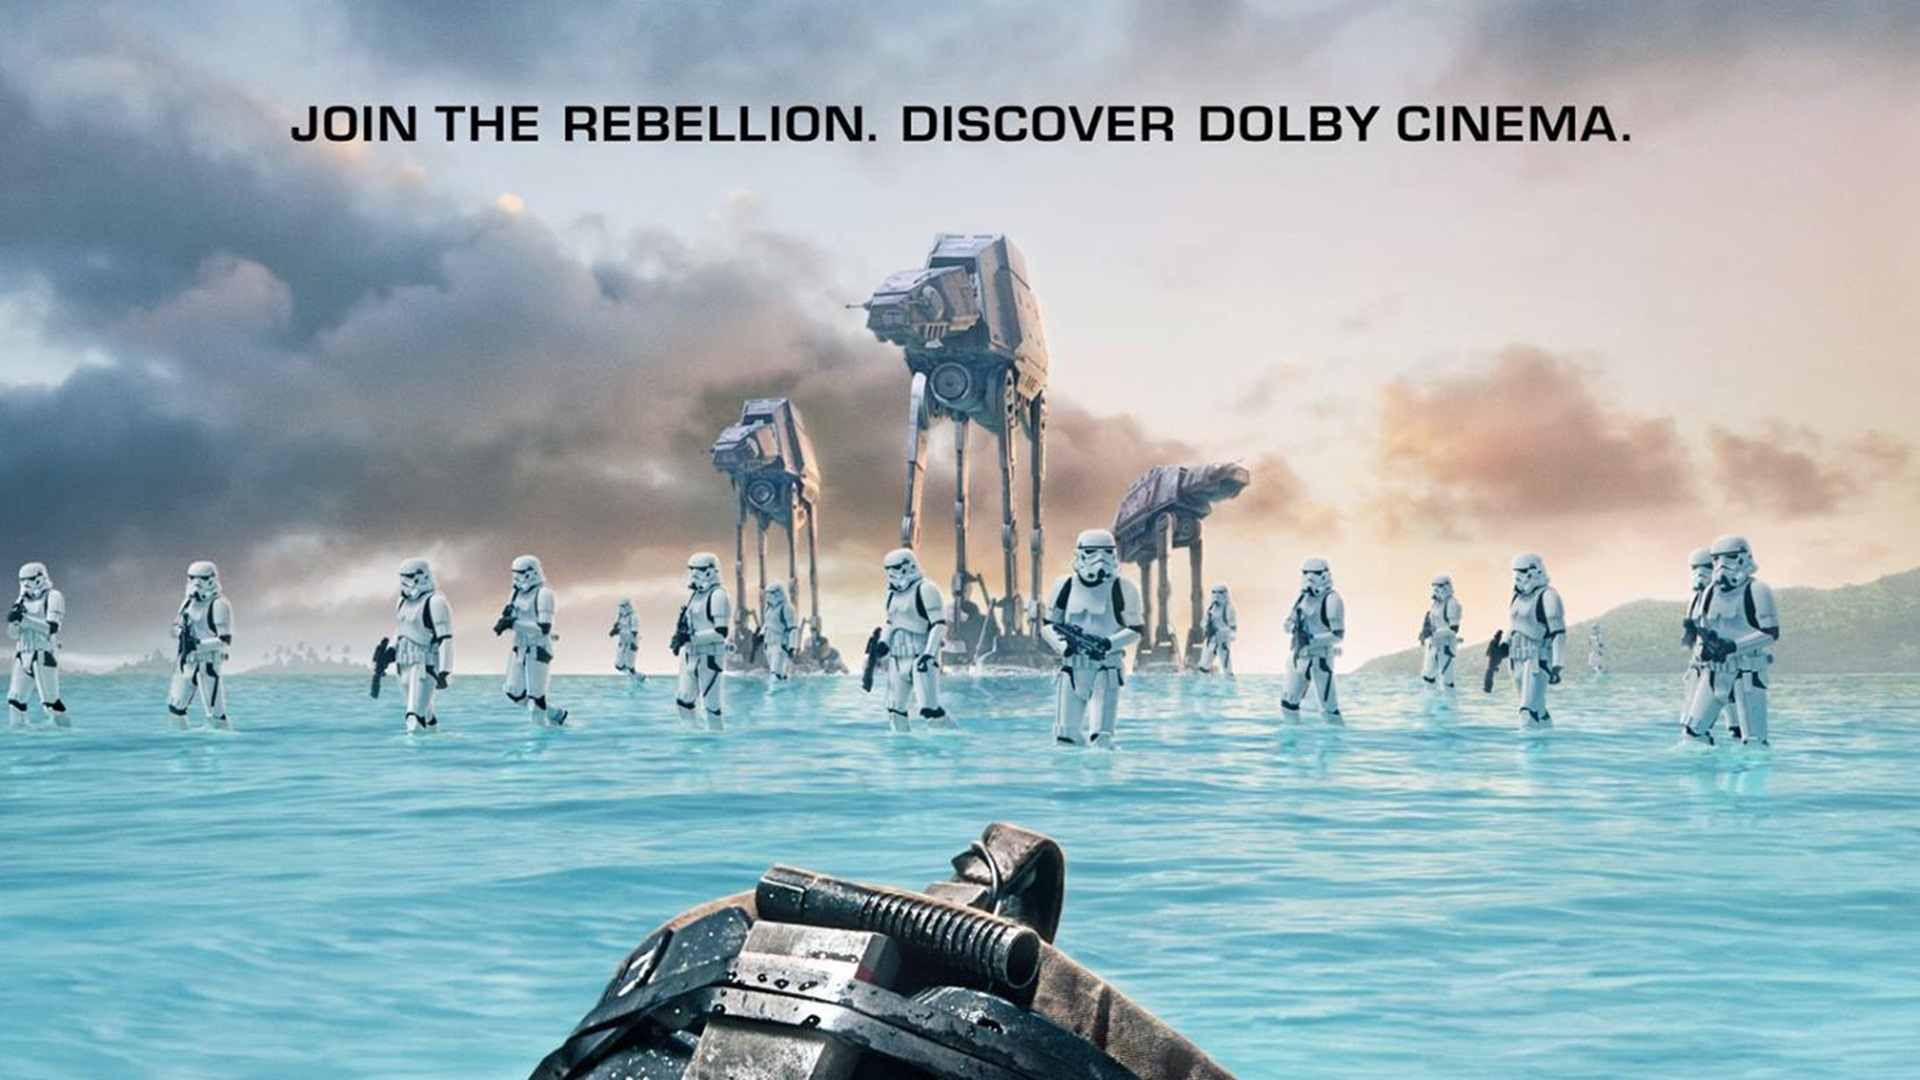 A Wallpaper For Rogue One A Star Wars Story W A L L P A P E R 1920x1080